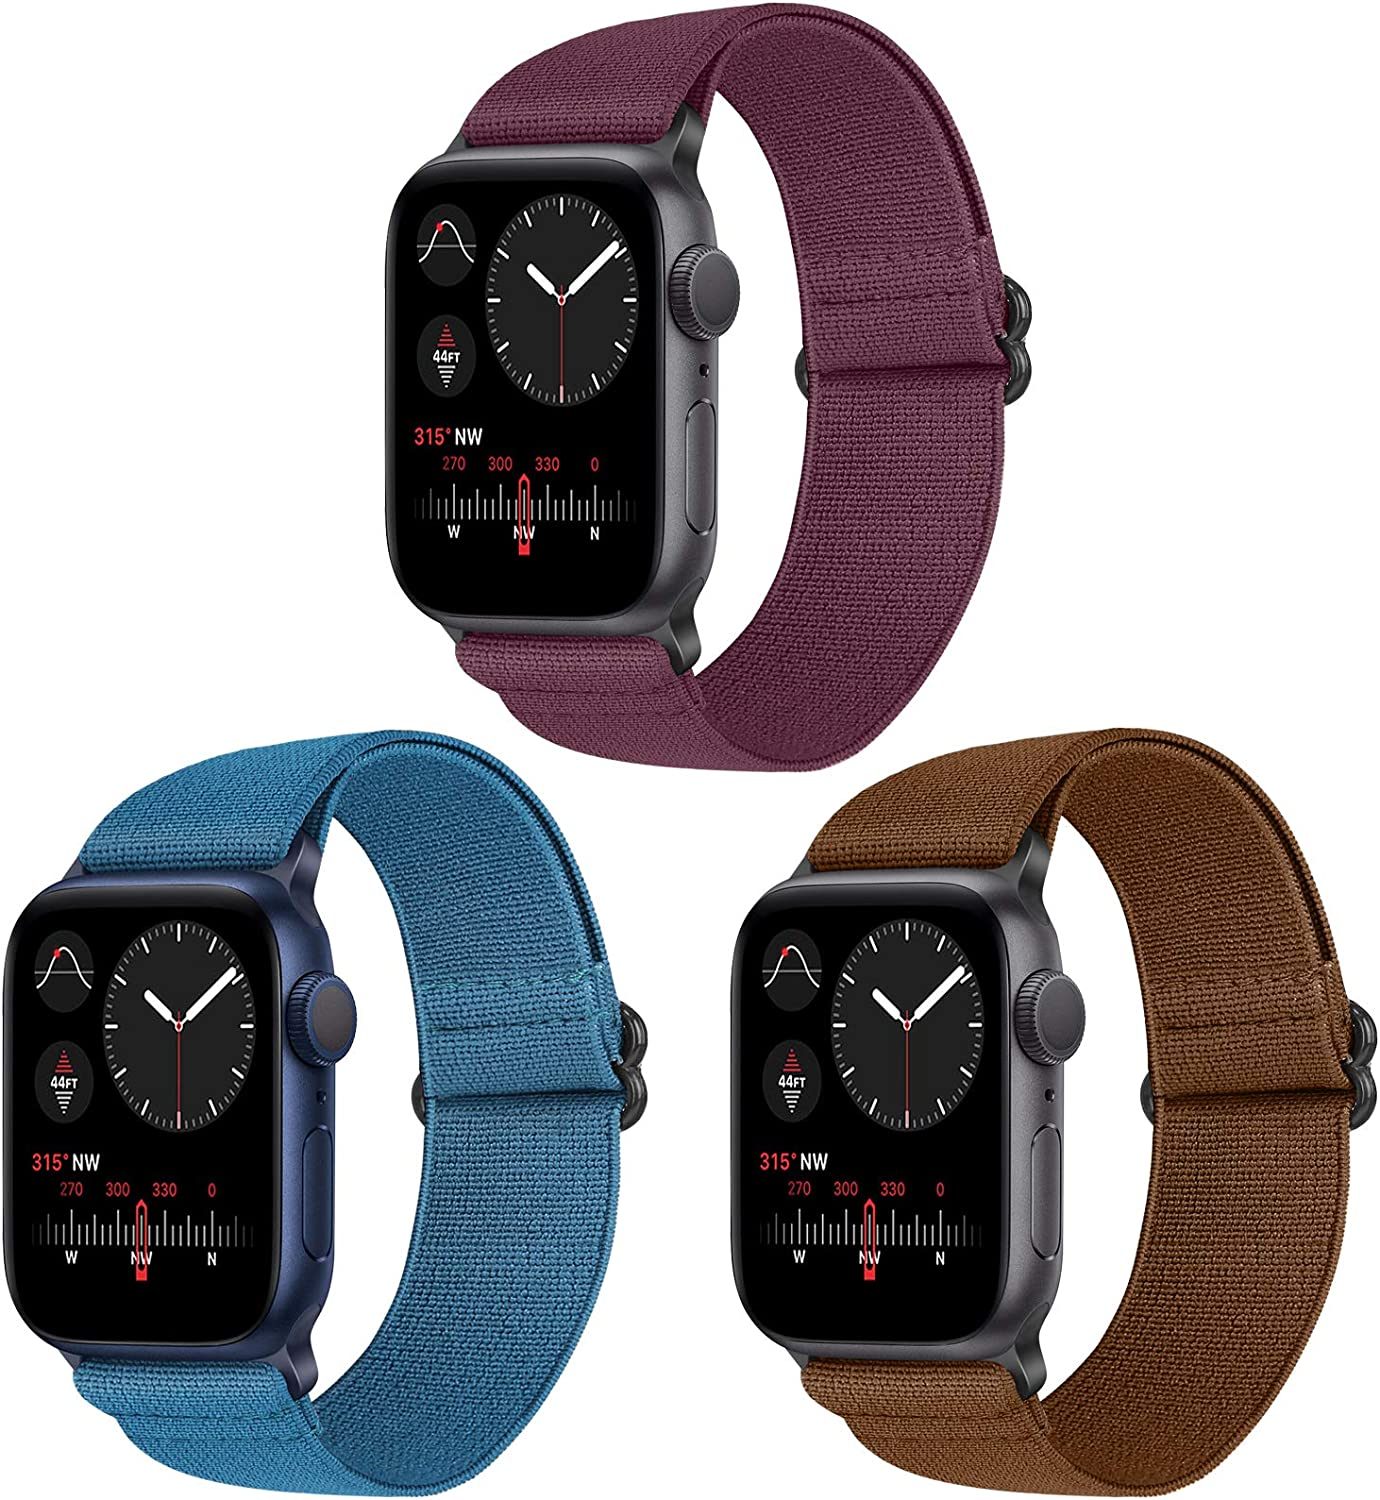 Vodtian Nylon Loop Elastic Watch Band Compatible with Apple Watch 42mm 44mm, Women Men Adjustable Replacement Sport Straps for iWatch Series 6/5/4/3/2/1/SE (Navy Blue+Brown+Wine Red, 42mm/44mm)